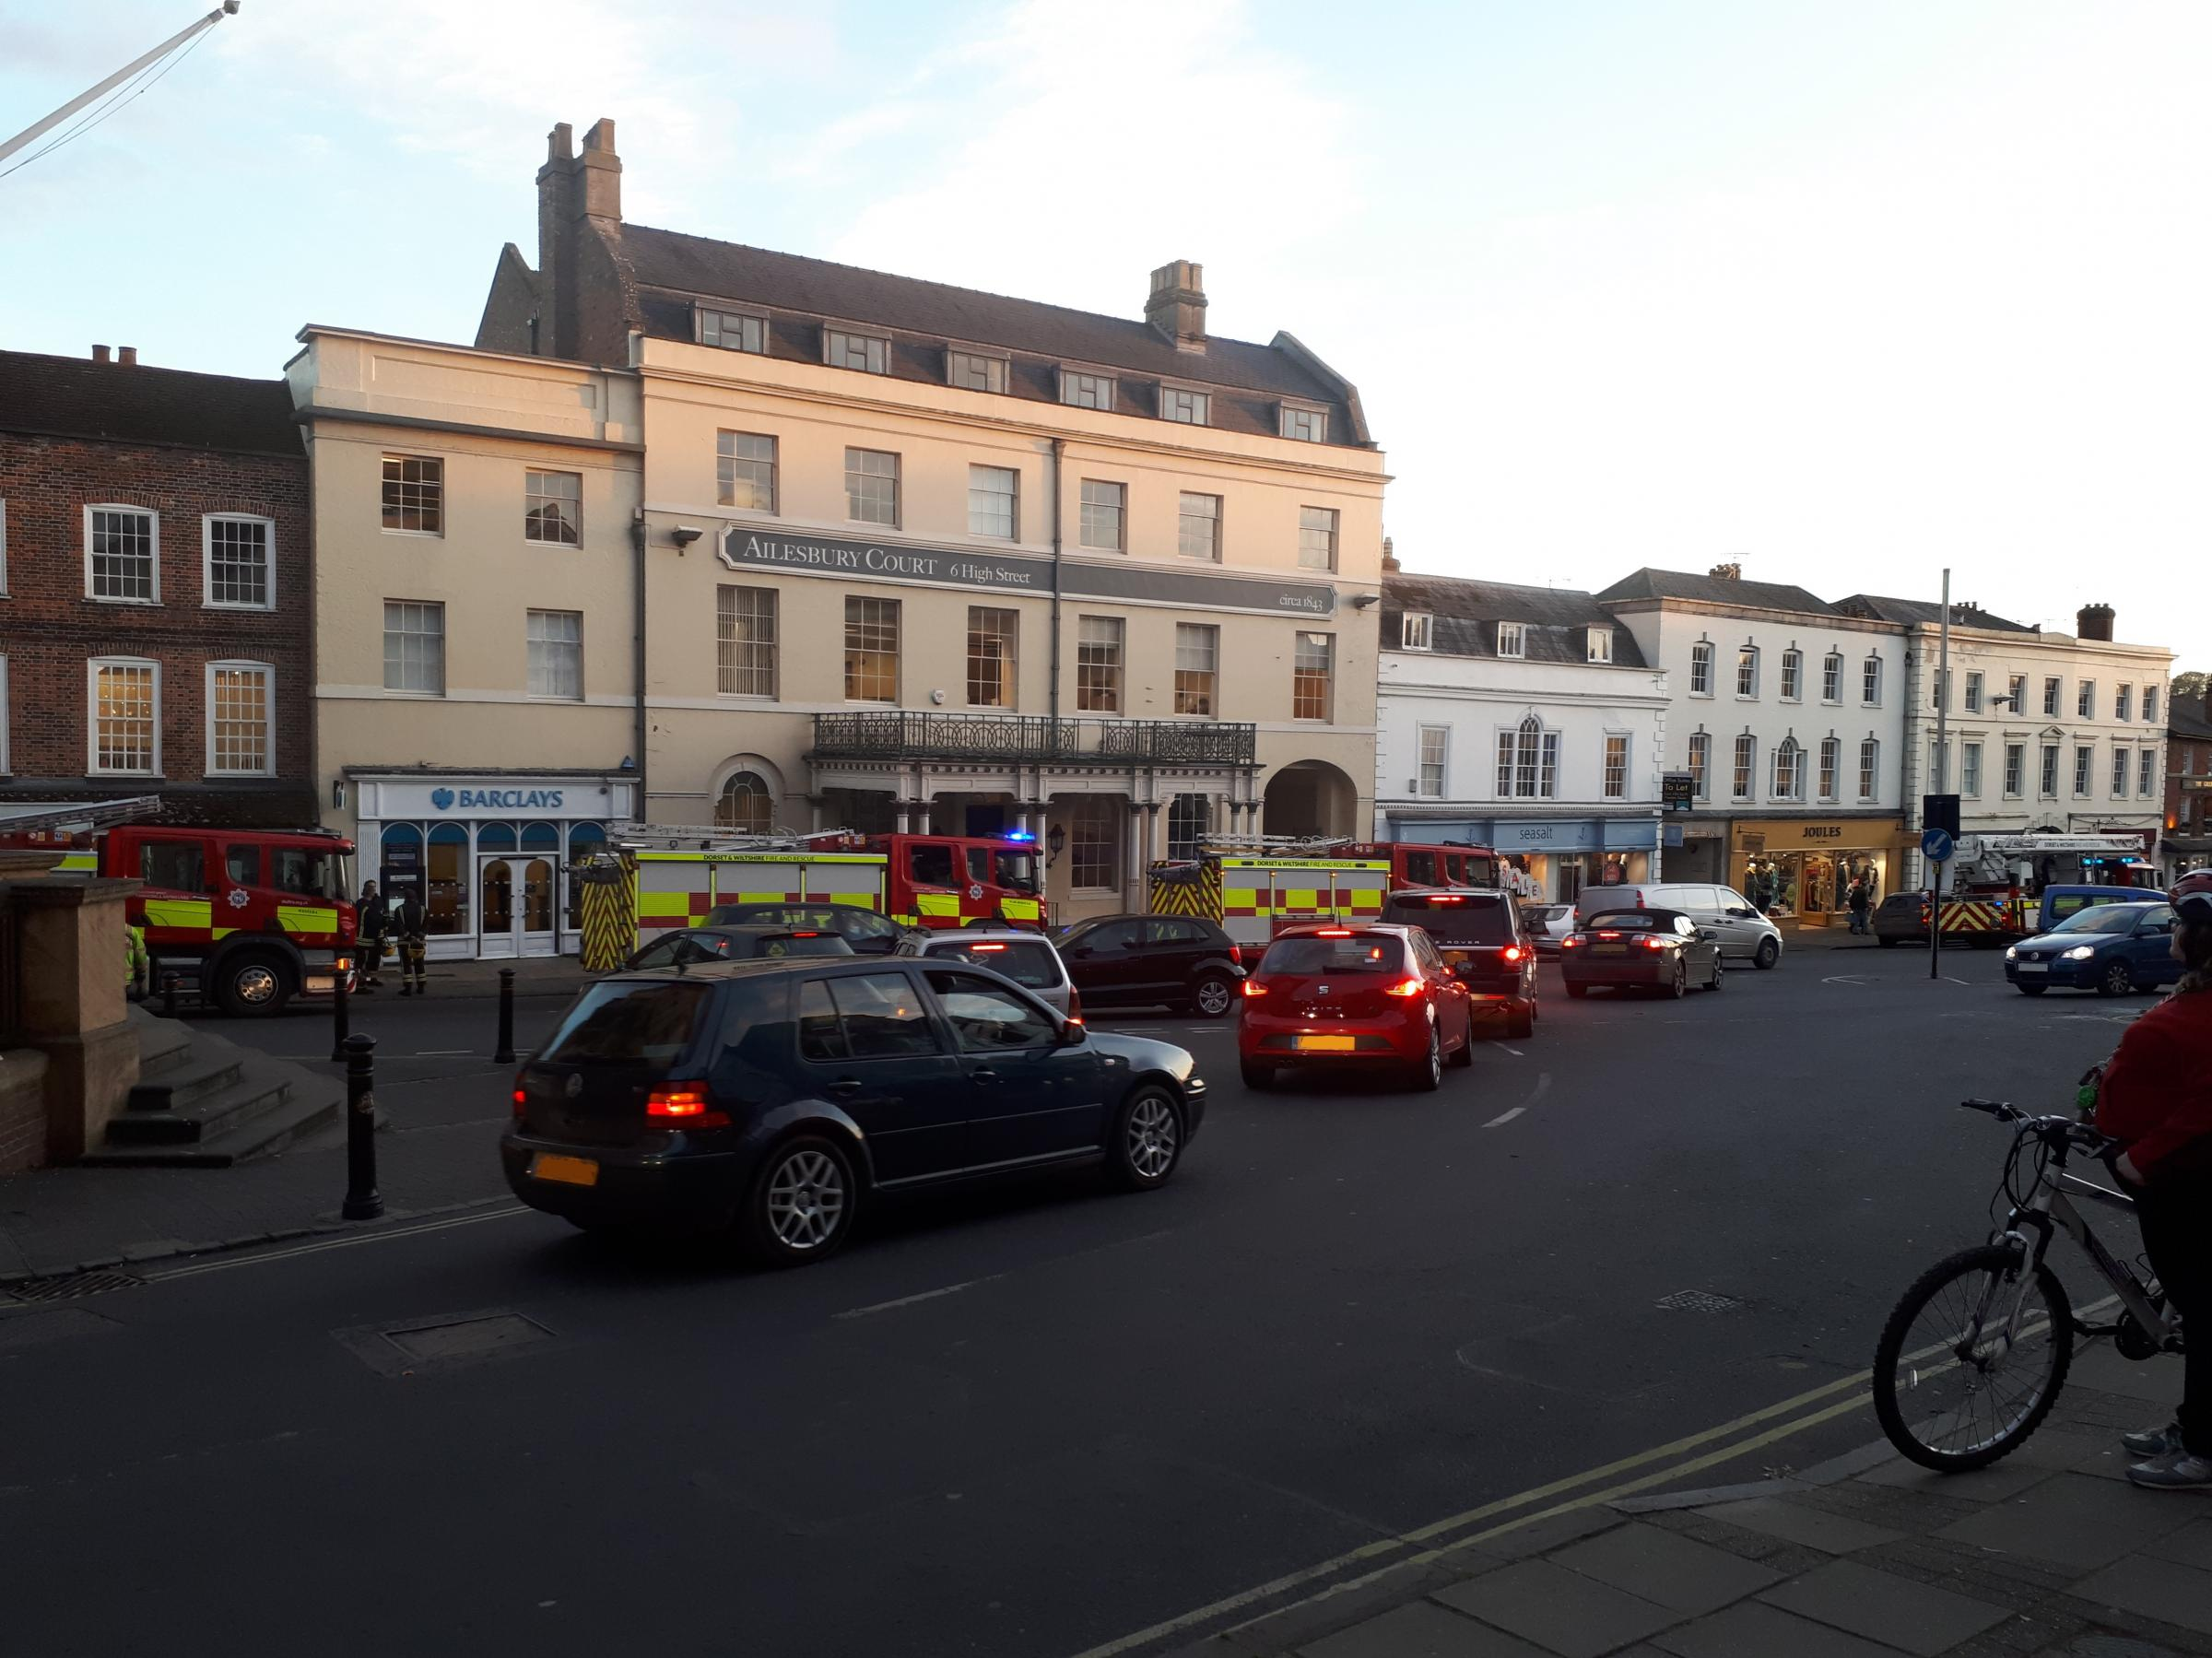 Fire services called to Barclays in Marlborough after staff members smelled smoke.